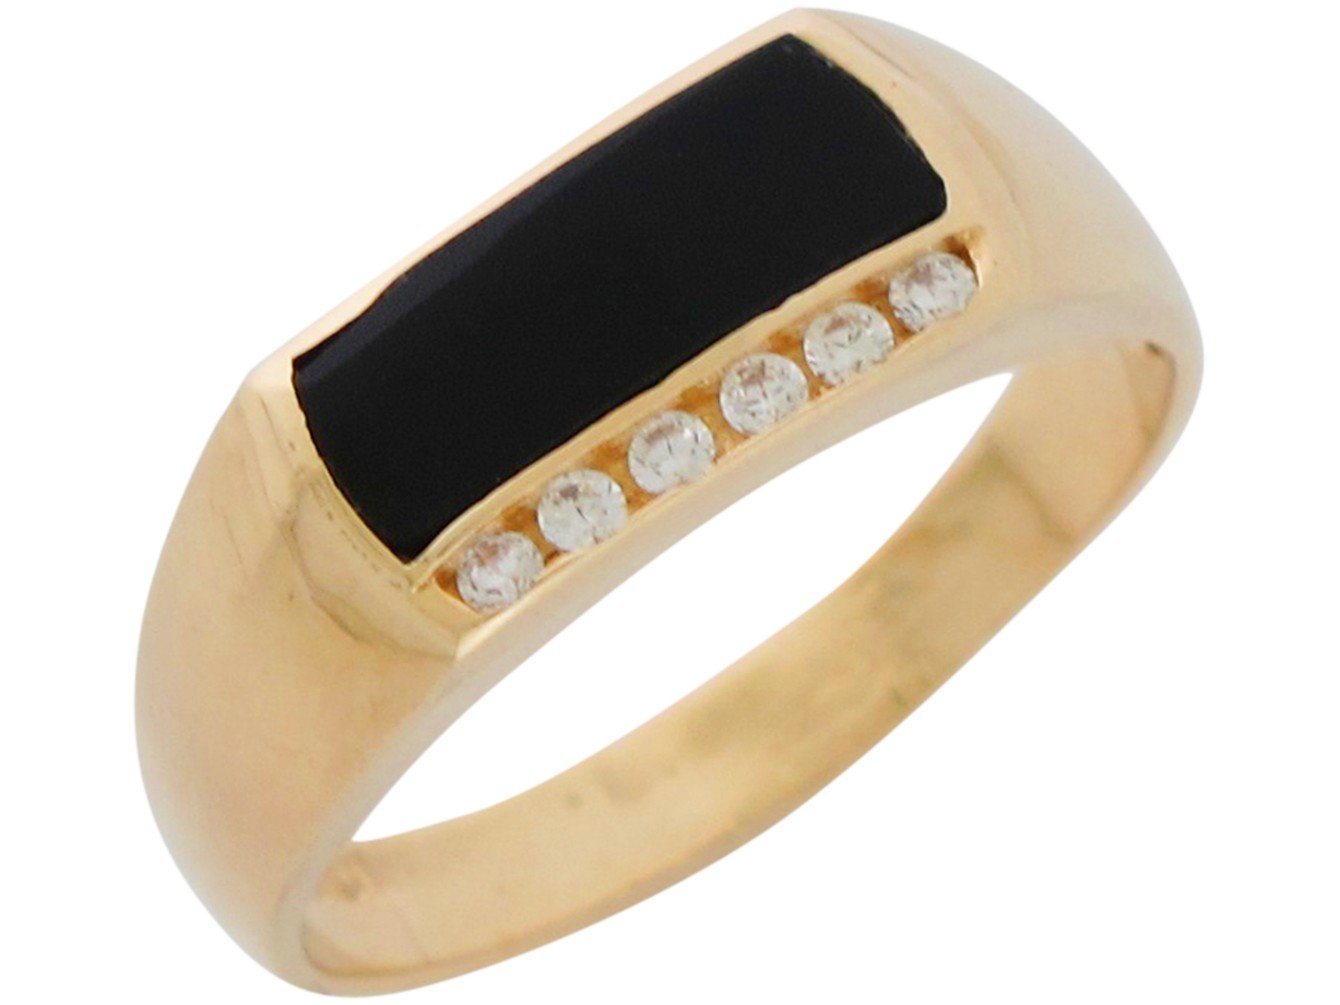 Mens Ring 14k Gold Classic Design Onyx and Genuine Diamonds Accented